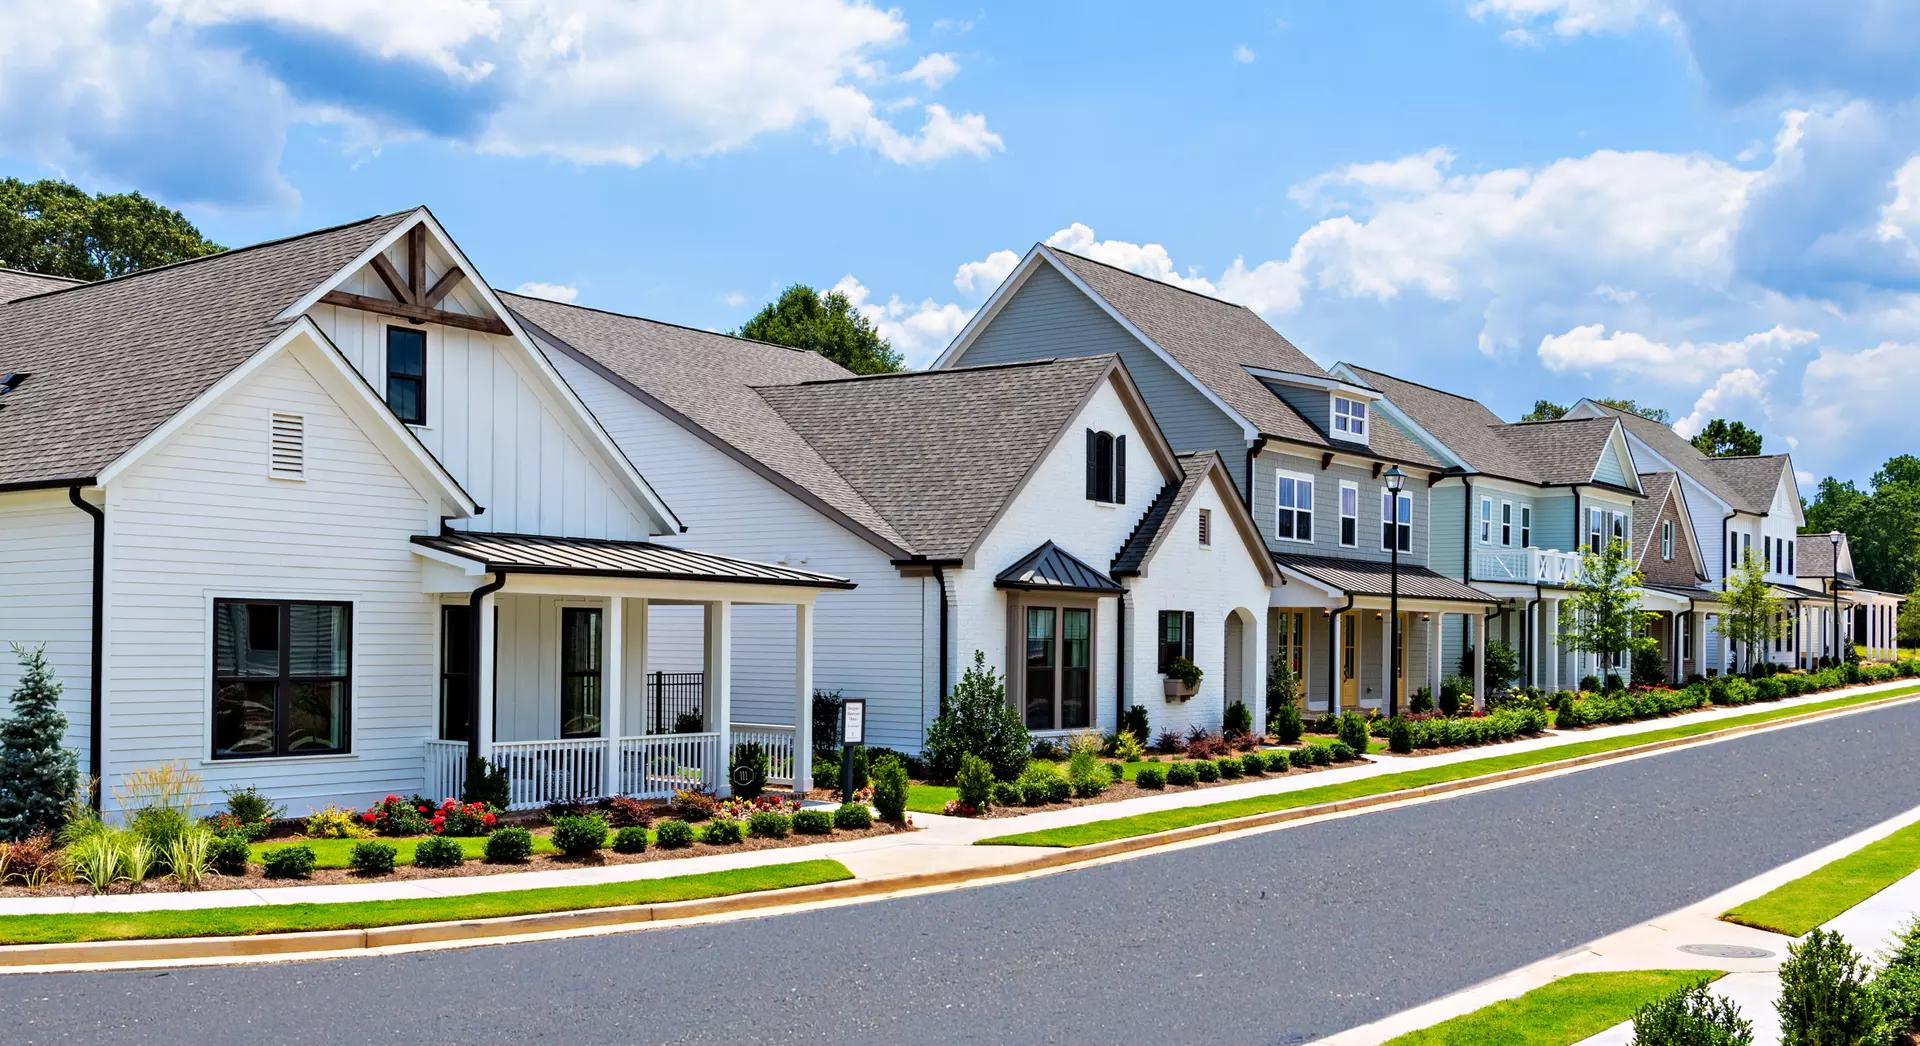 Owner-on-Main and More - Homes for Your Stage of Life From The Providence Group